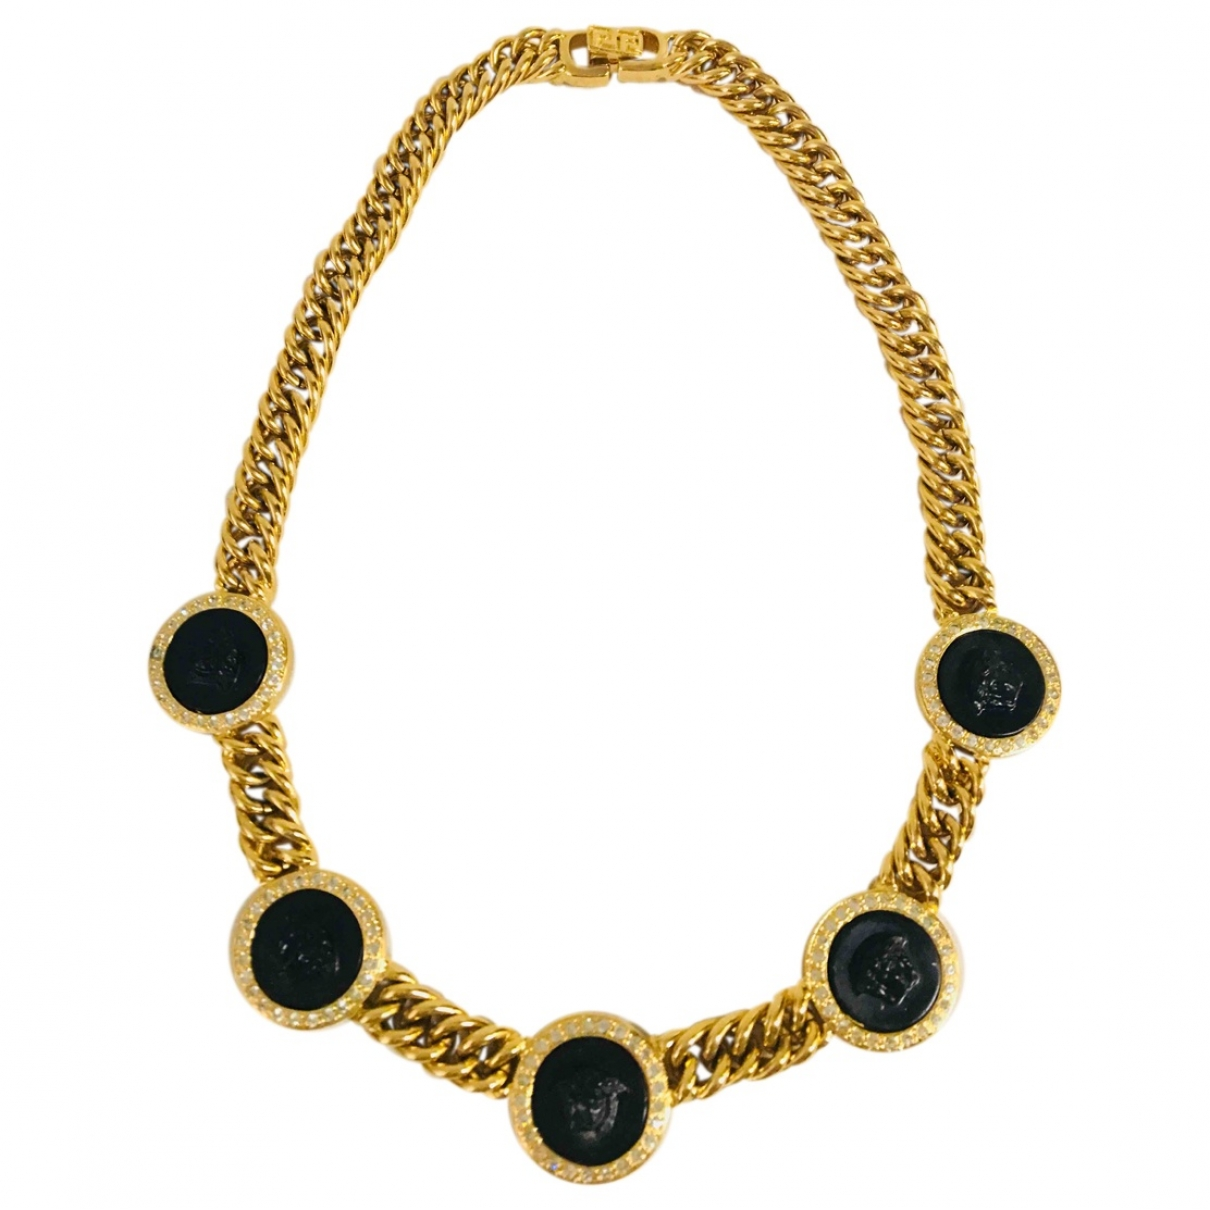 Gianni Versace \N Gold Metal necklace for Women \N